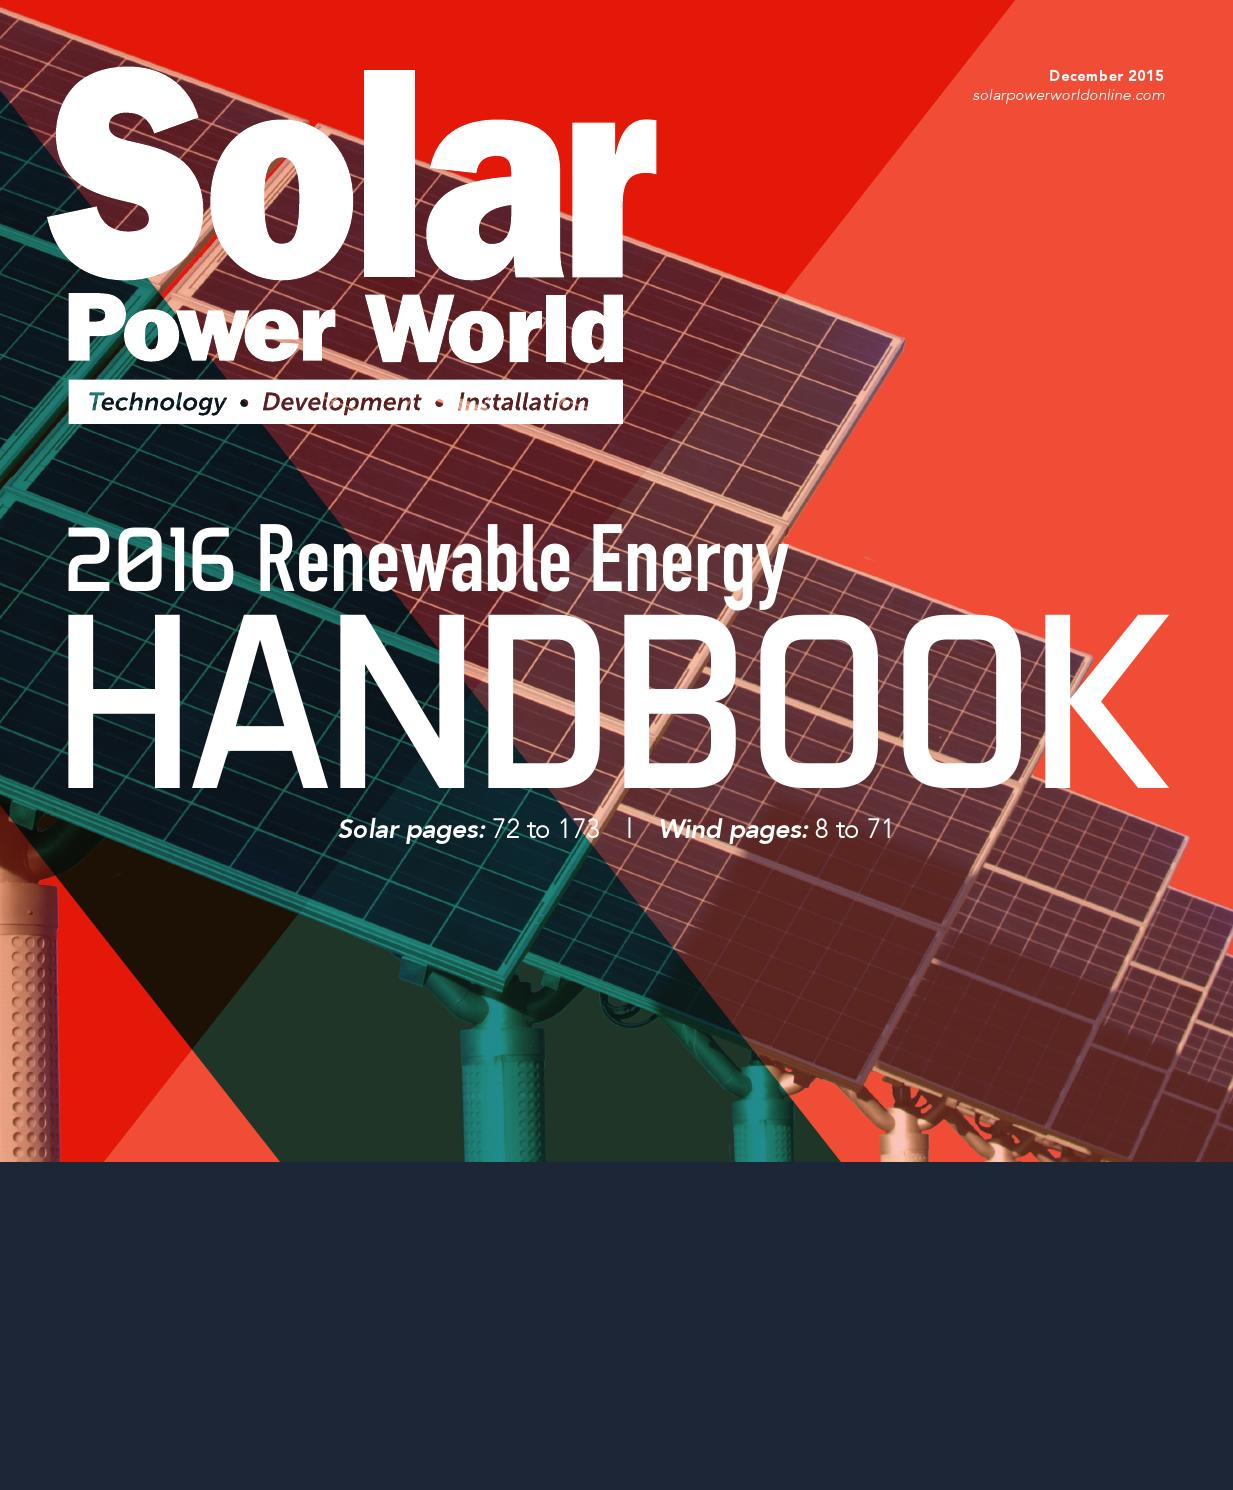 2016 Renewable Energy Handbook Solar By Wtwh Media Llc Issuu Diagrams Besides Grid Tie Inverter Schematic Circuits Likewise